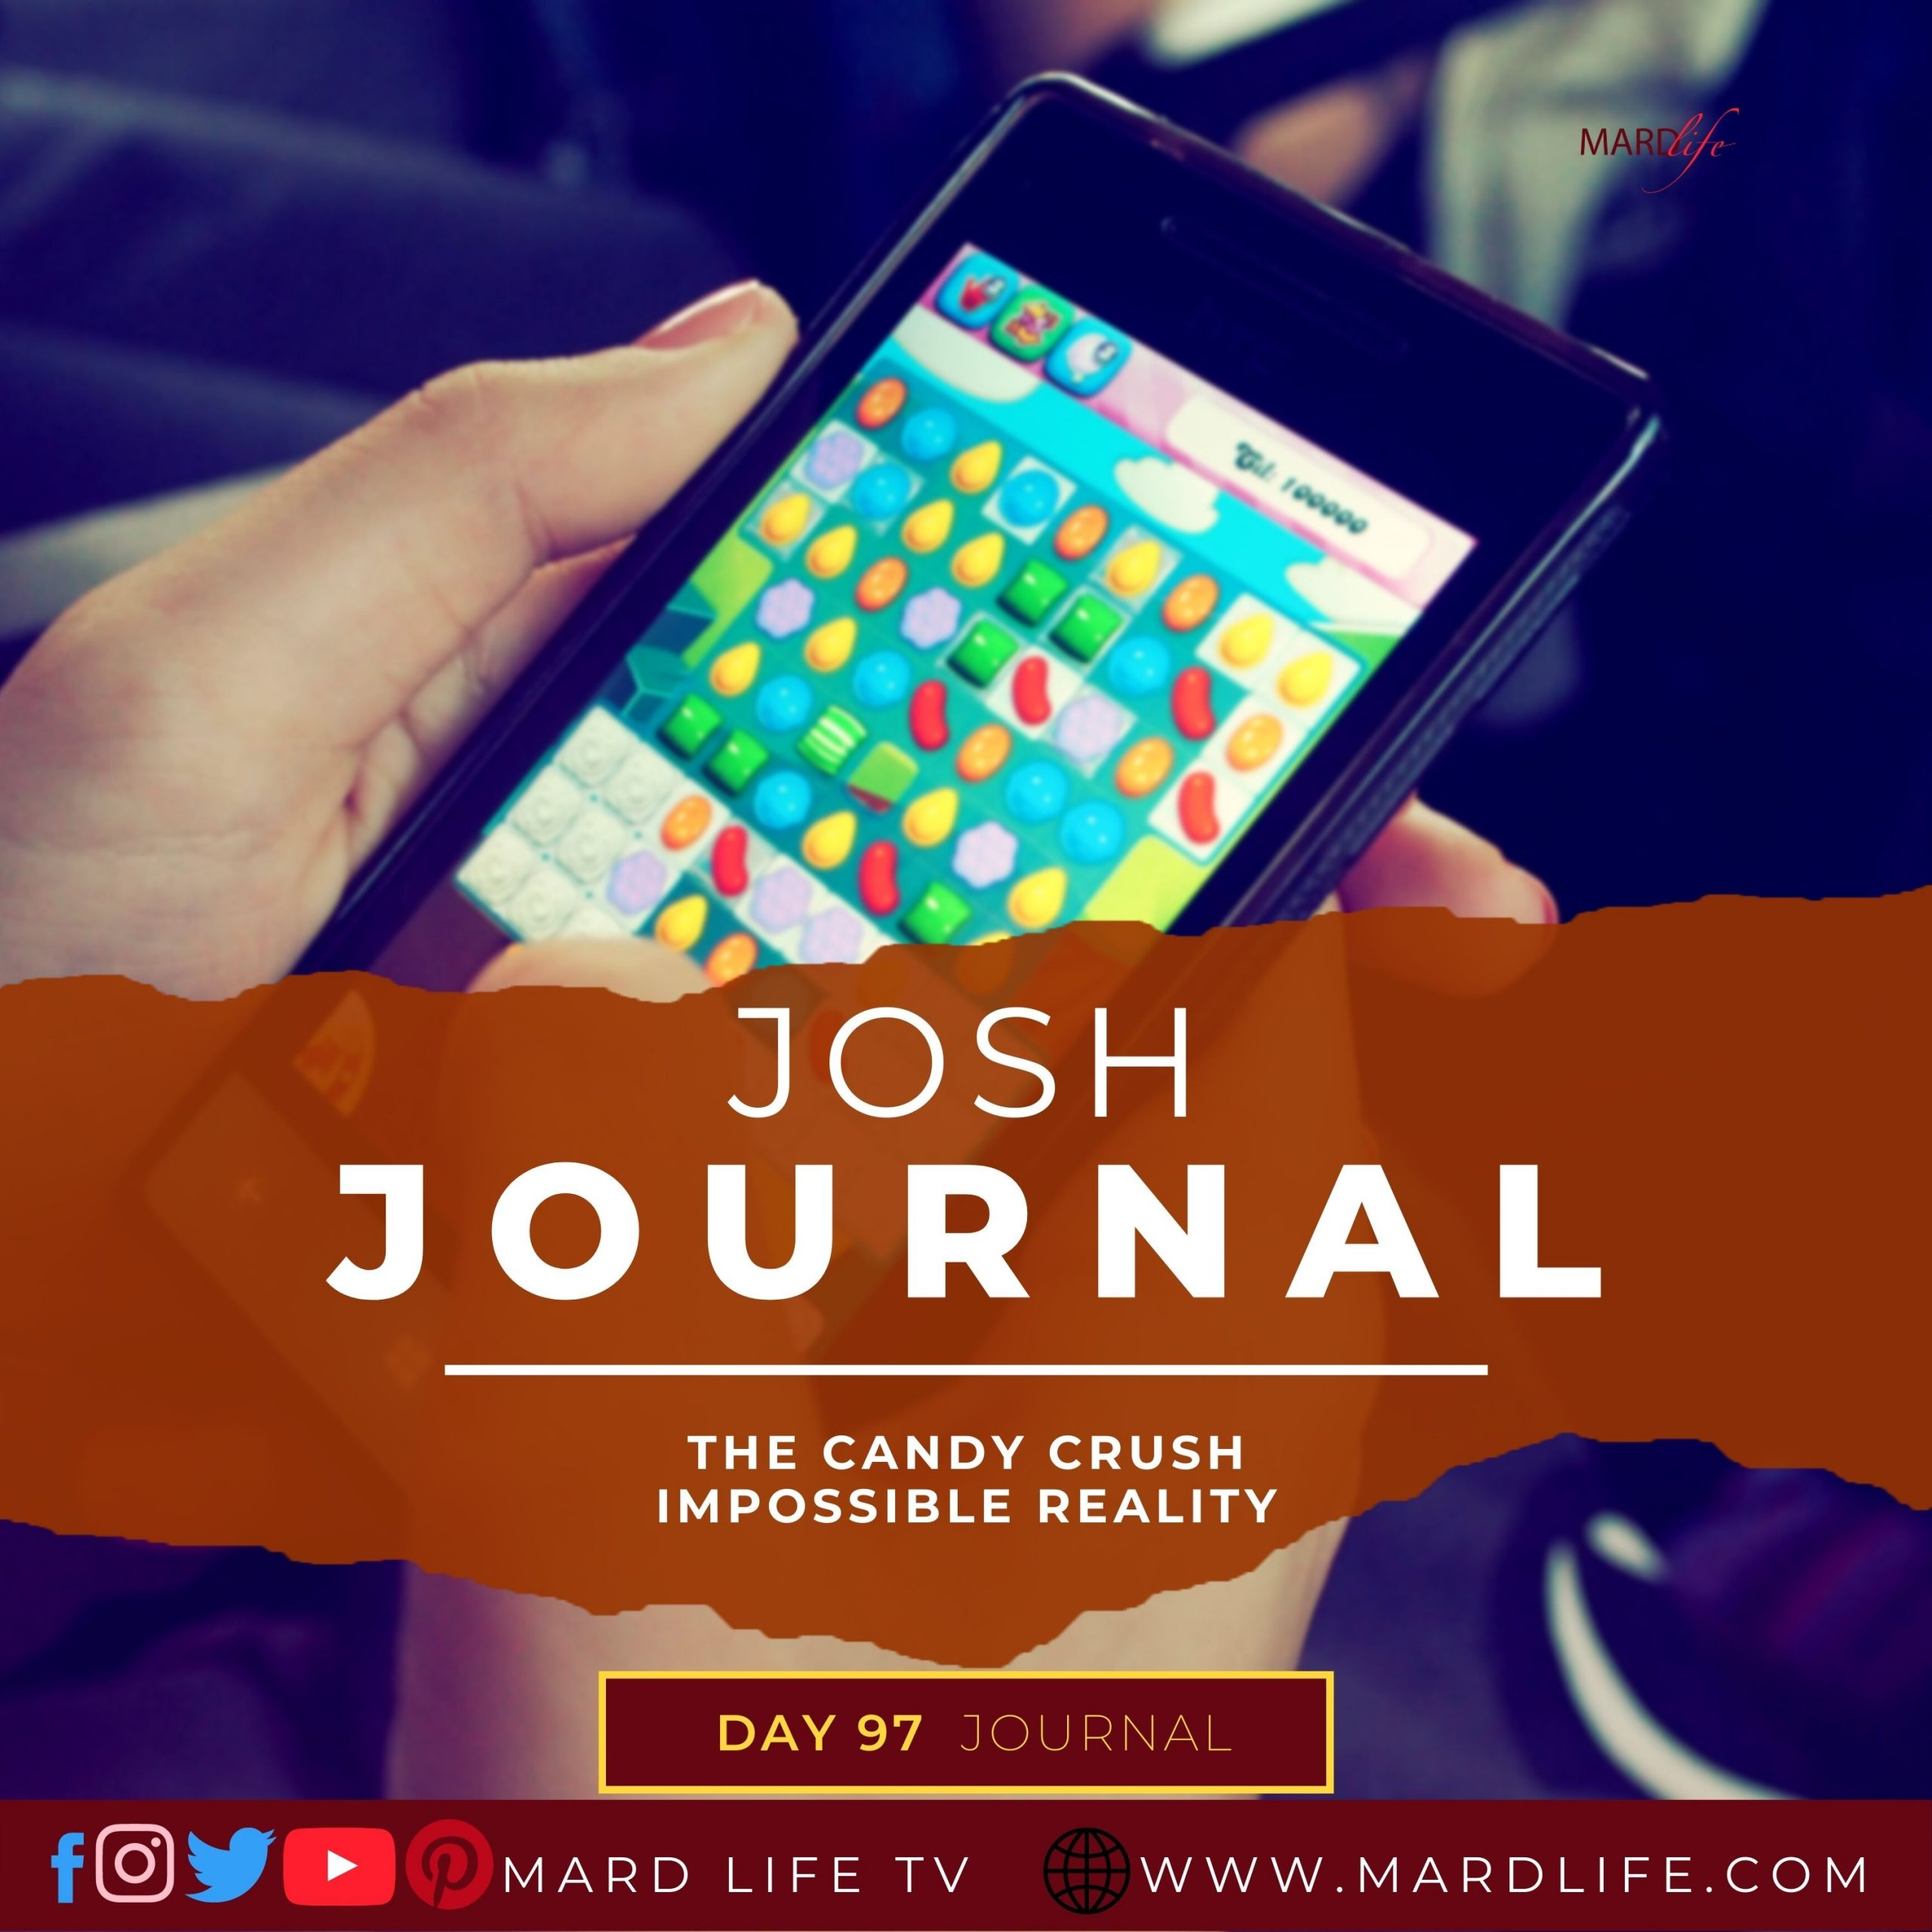 Candy Crush, Possible, Impossible, Saga, Attempt, Try, Phone, Game, Ability, Mental Barrier, Mental Strength,